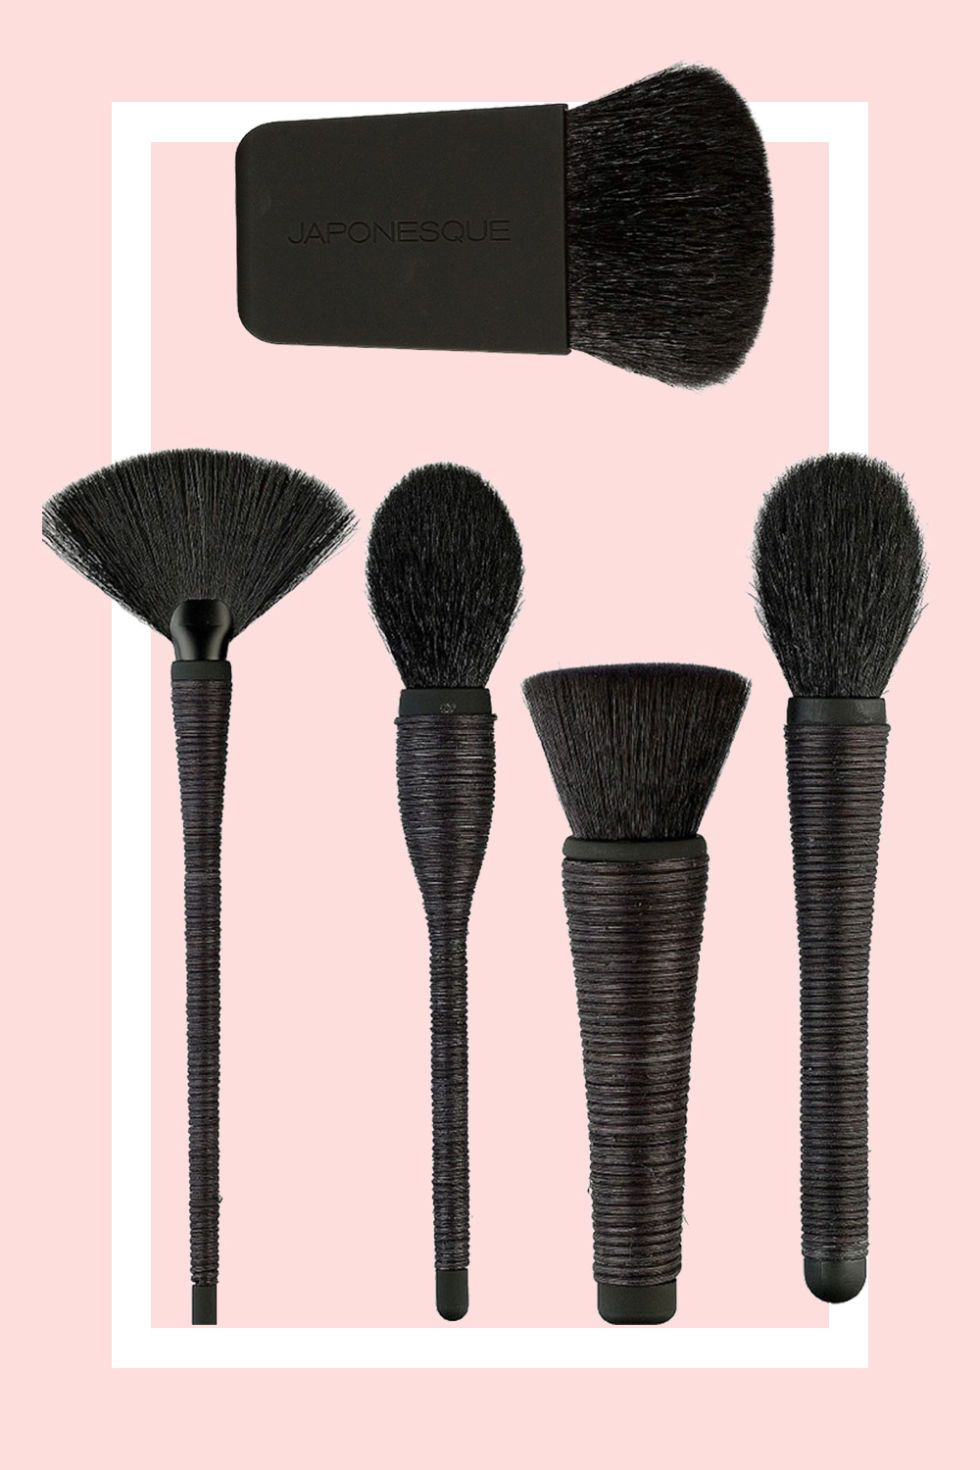 From Drugstore Steals to Luxe Splurges, 8 Makeup Brush